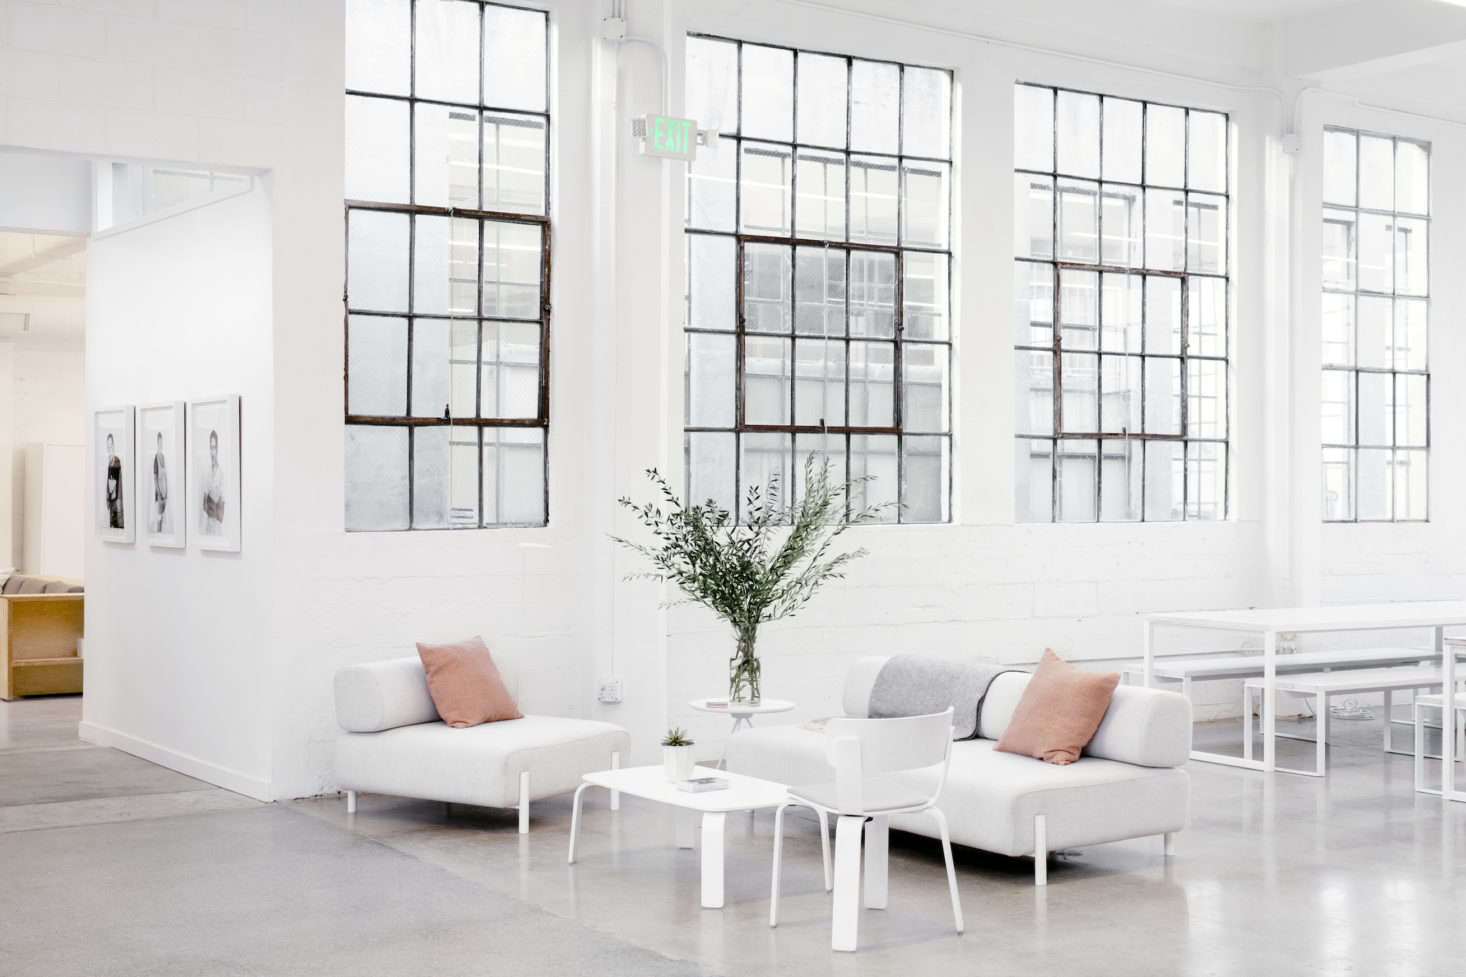 Modern White Scandinavian Sofas In Everlaneu0027s Lofty White Office In SF,  Carlos Chavarría Photo |